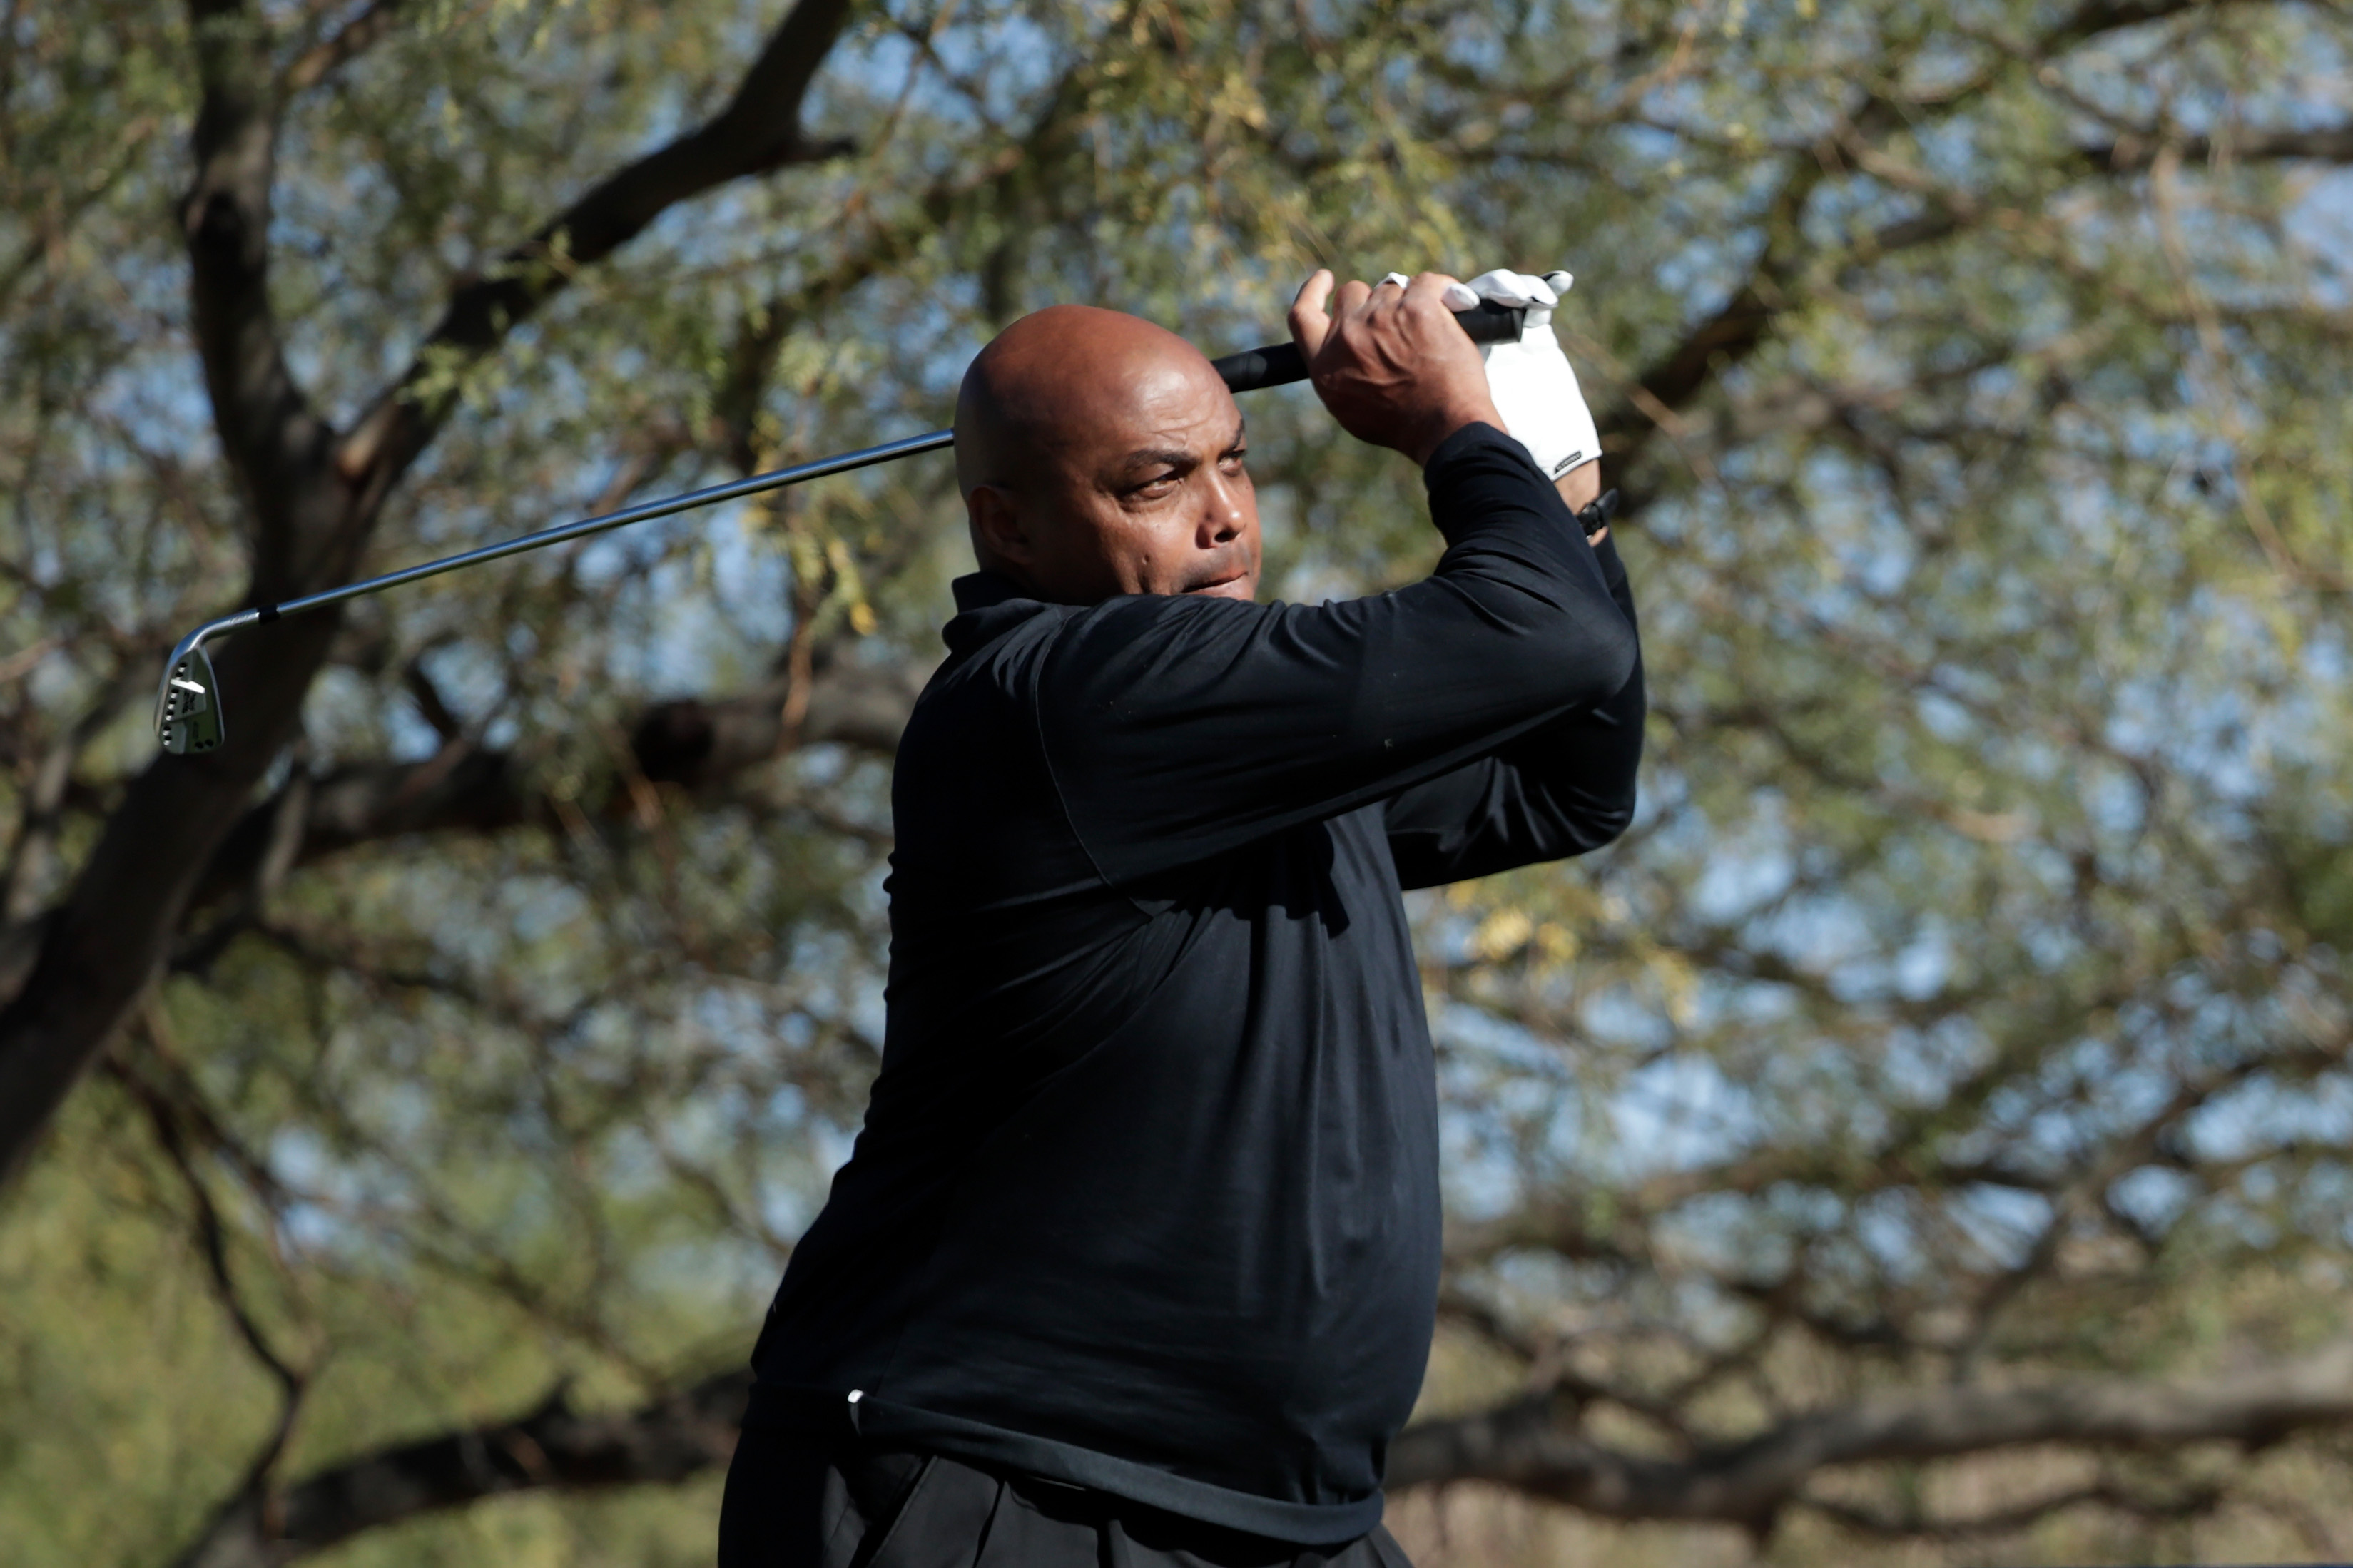 Charles Barkley plays his shot from the first tee